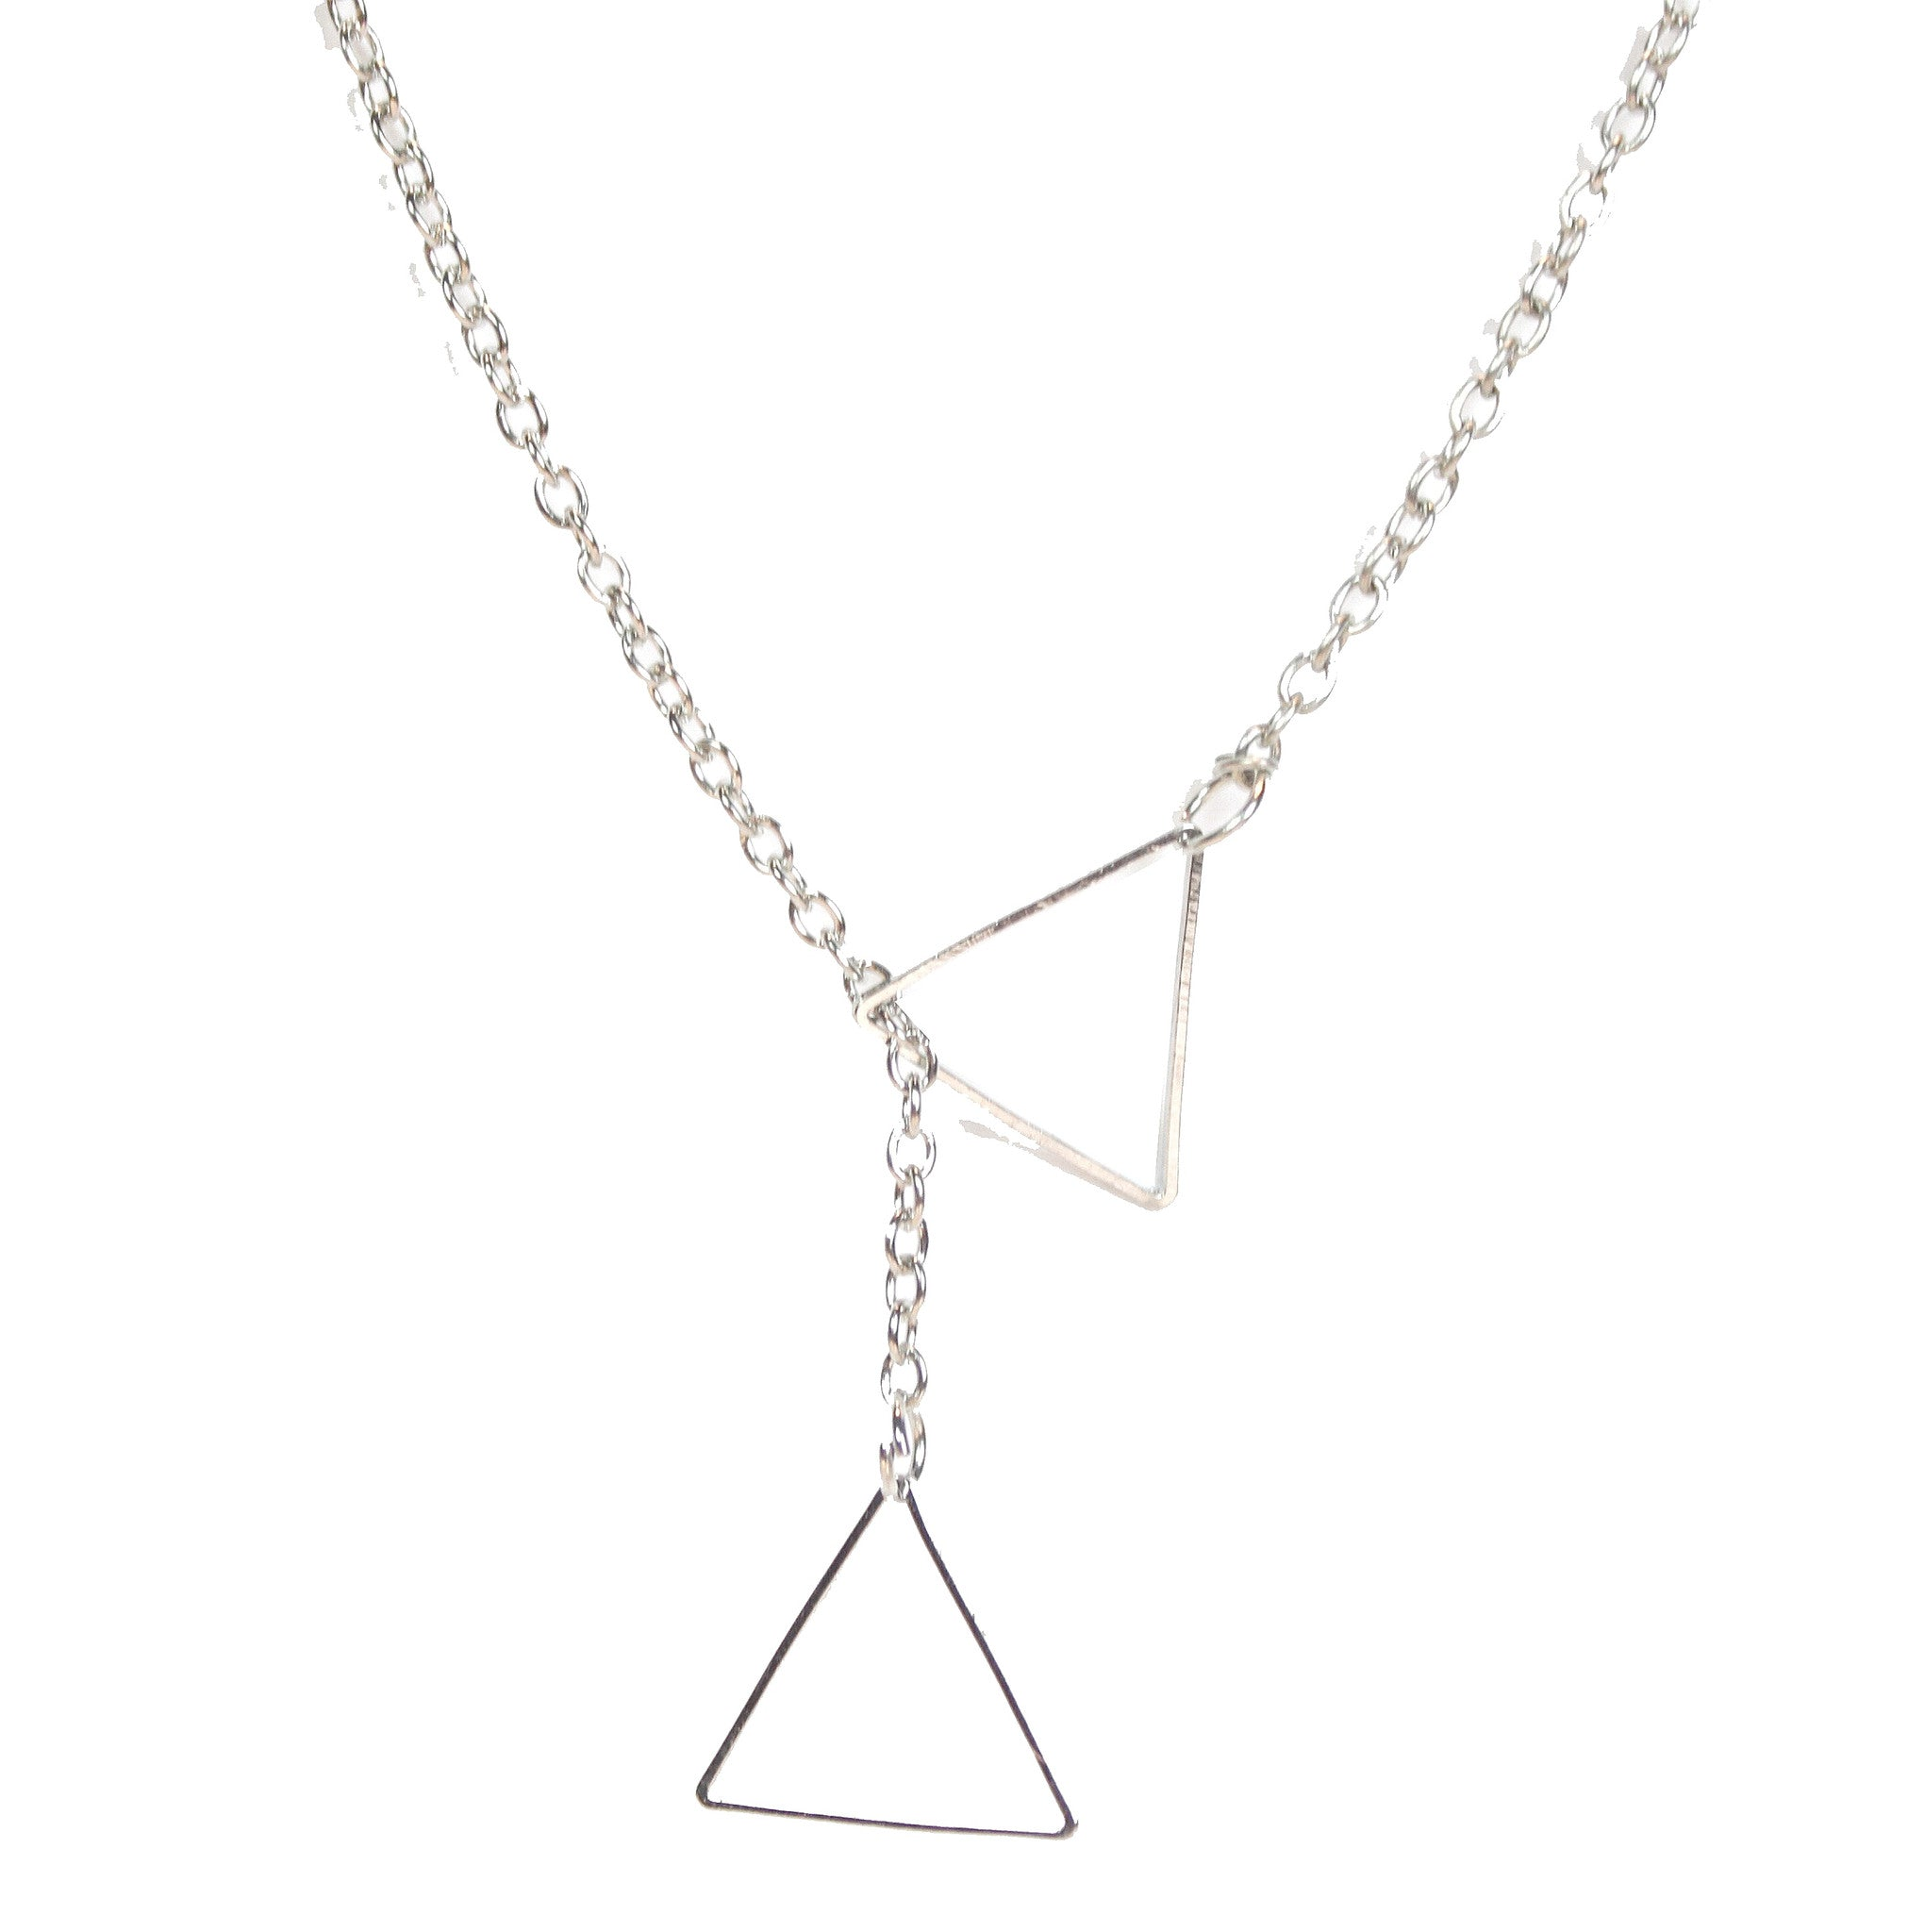 Trinetta Silver Necklace